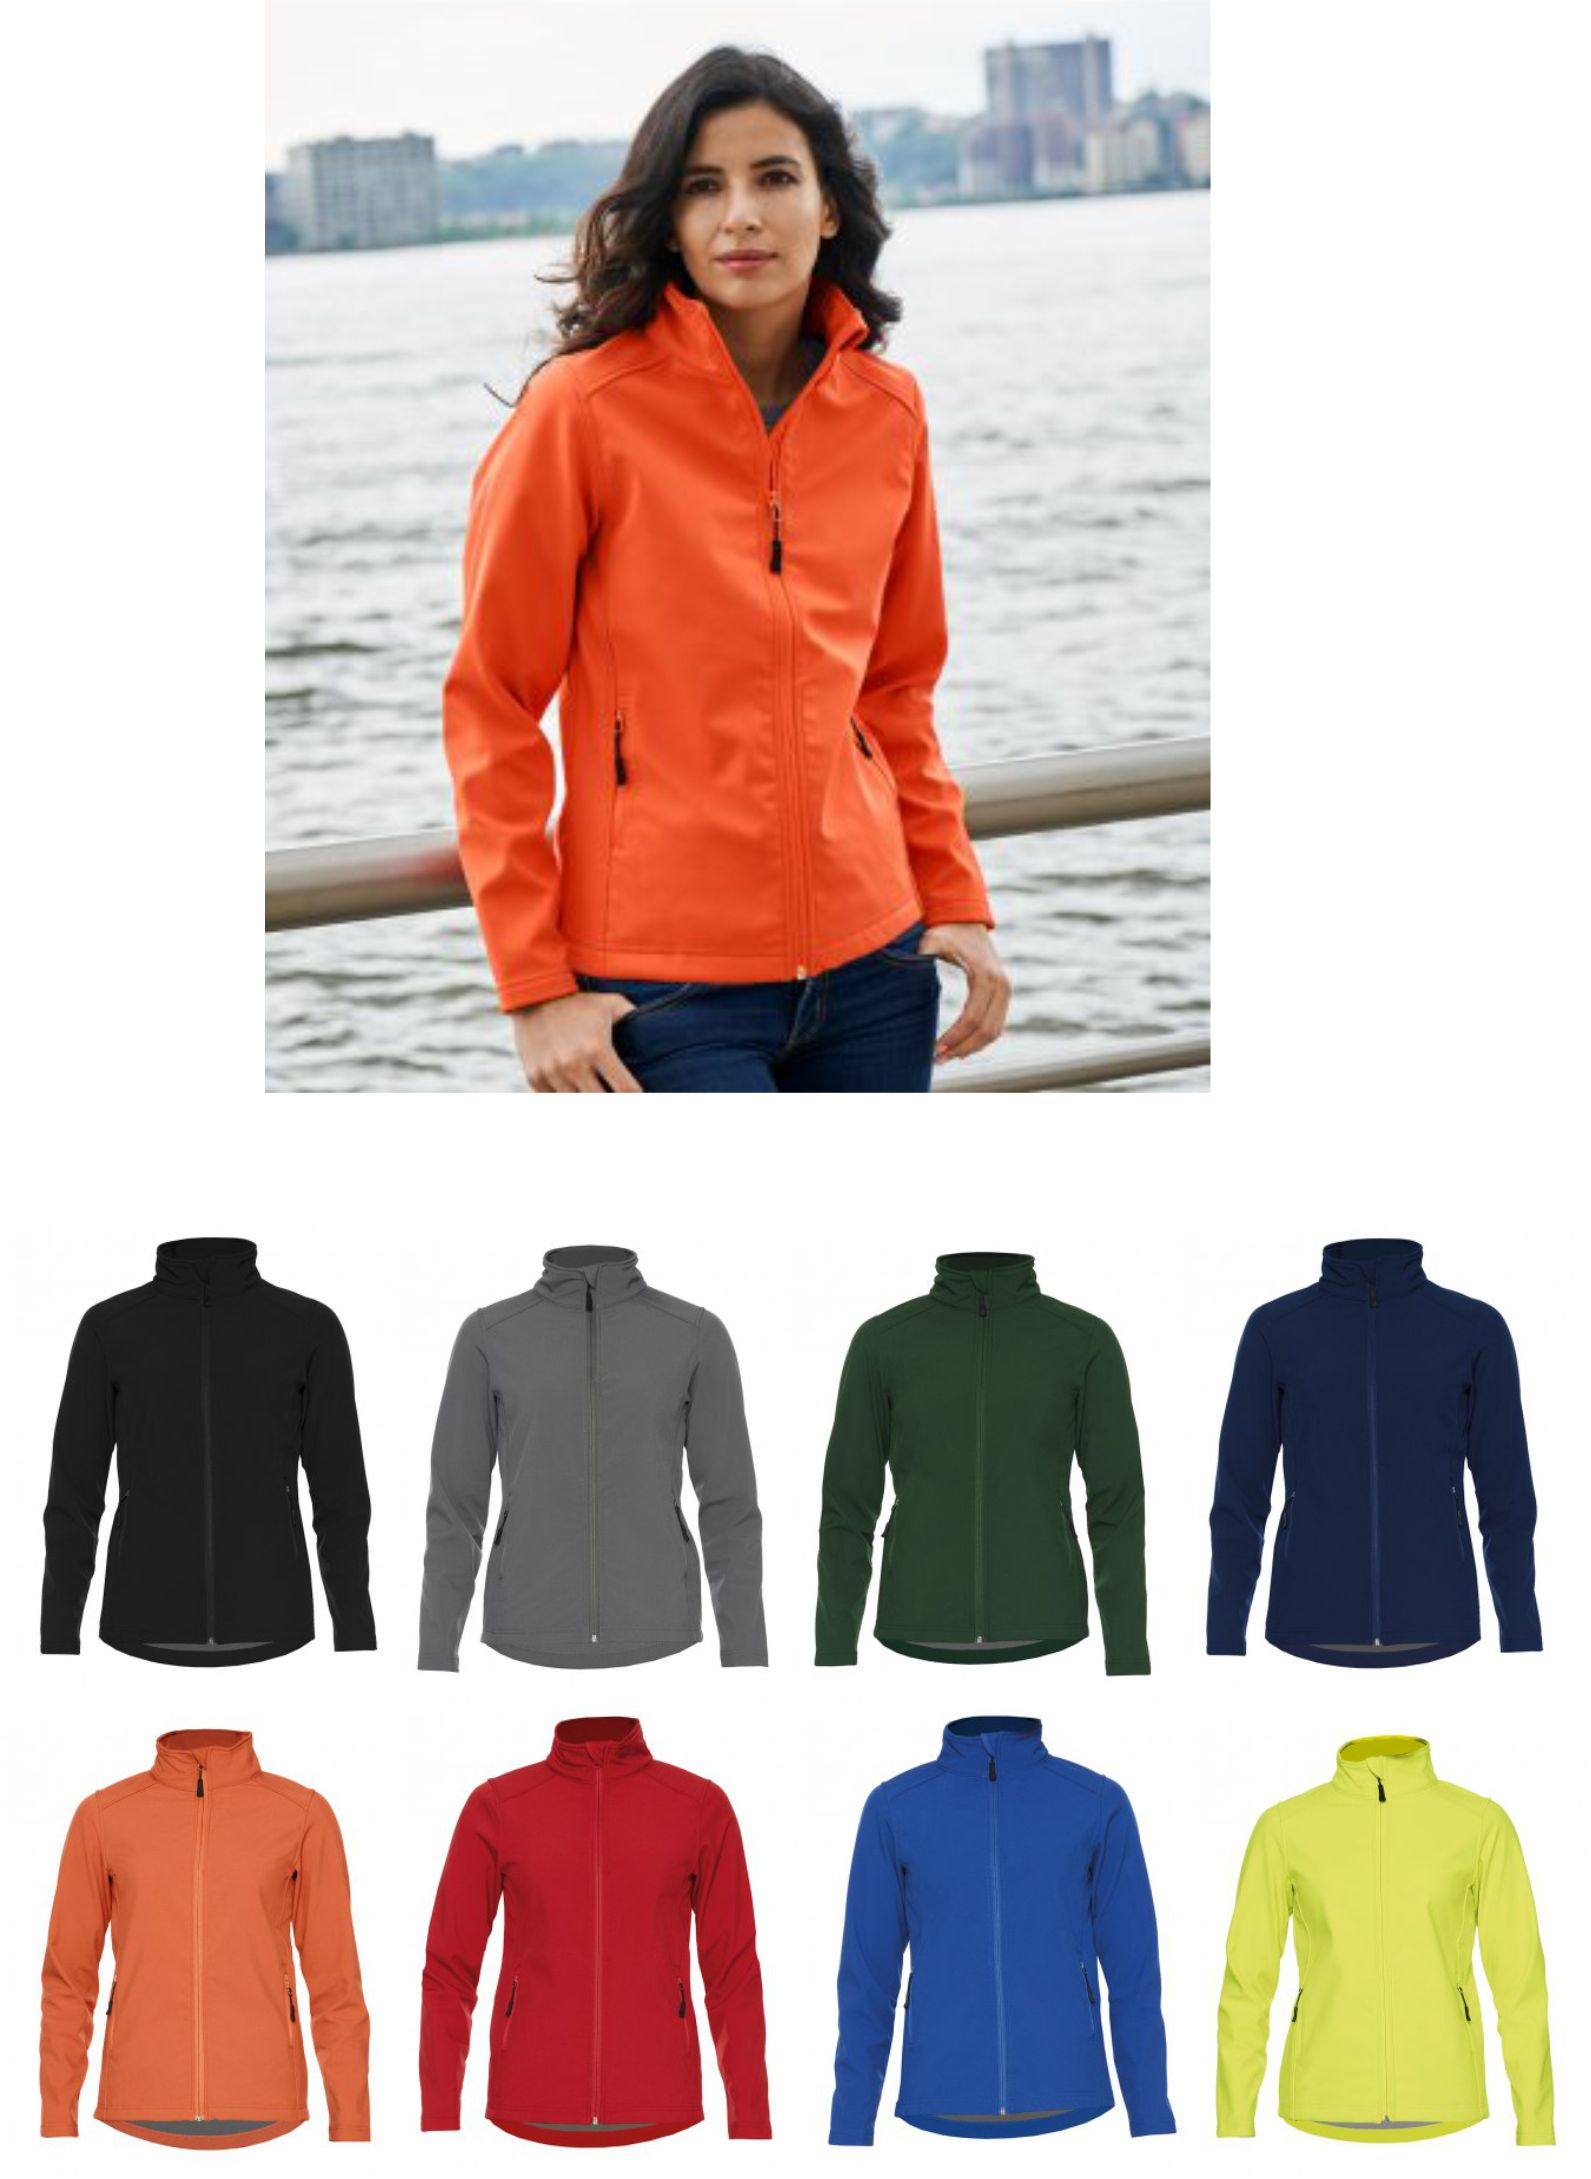 GH115 Gildan Hammer Ladies Soft Shell jacket